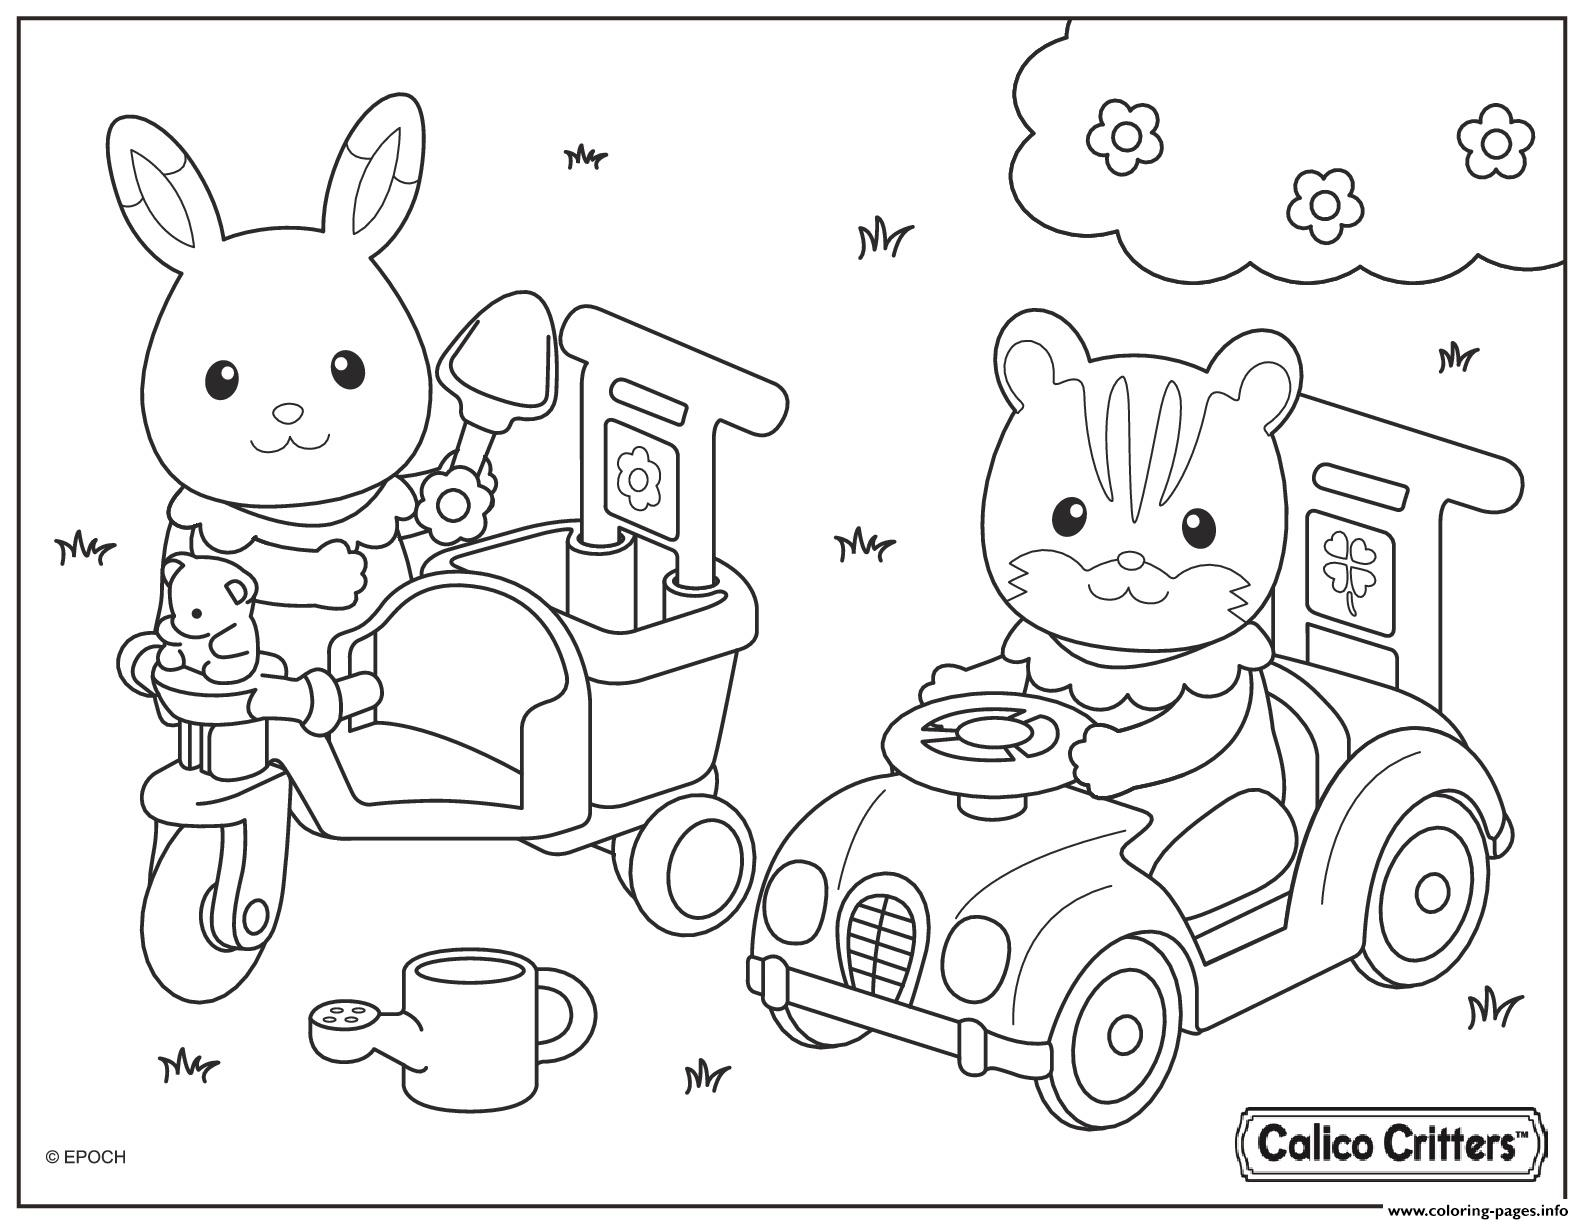 1584x1224 Calico Critters Drive Car With Friend Coloring Pages Printable